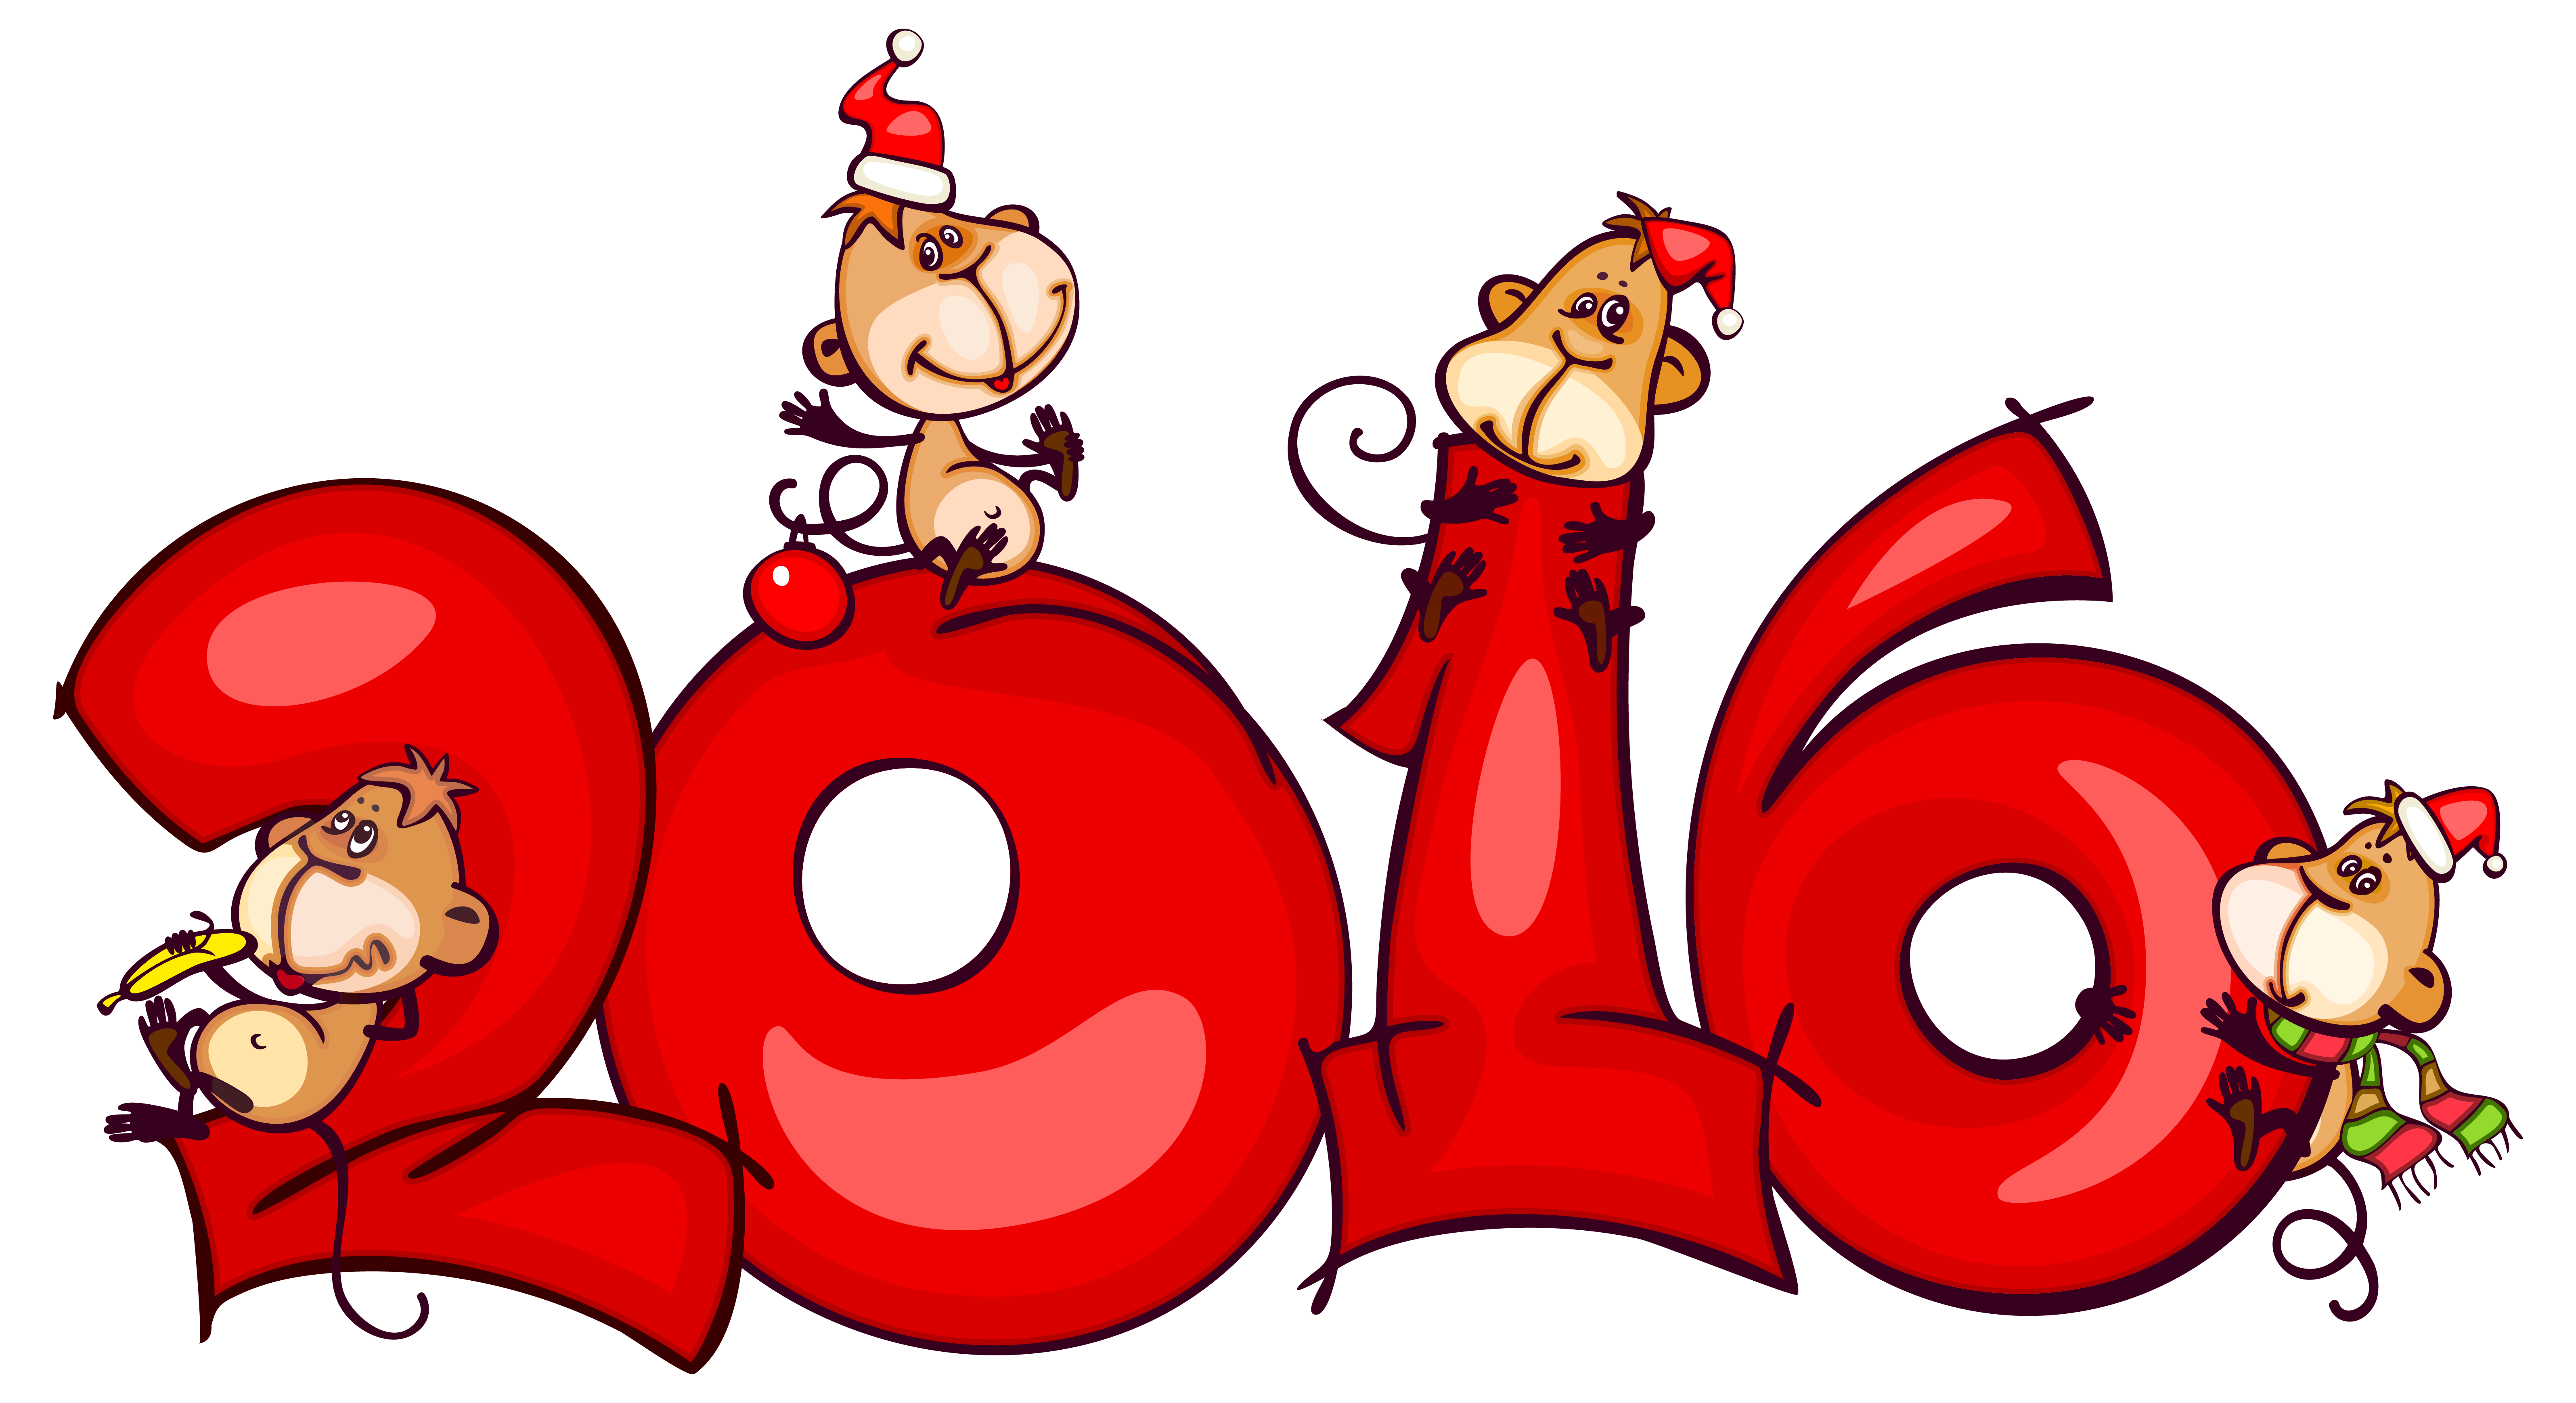 Christmas 2016 clipart jpg library download 2016 with Monkeys PNG Clipart Image | Gallery Yopriceville - High ... jpg library download